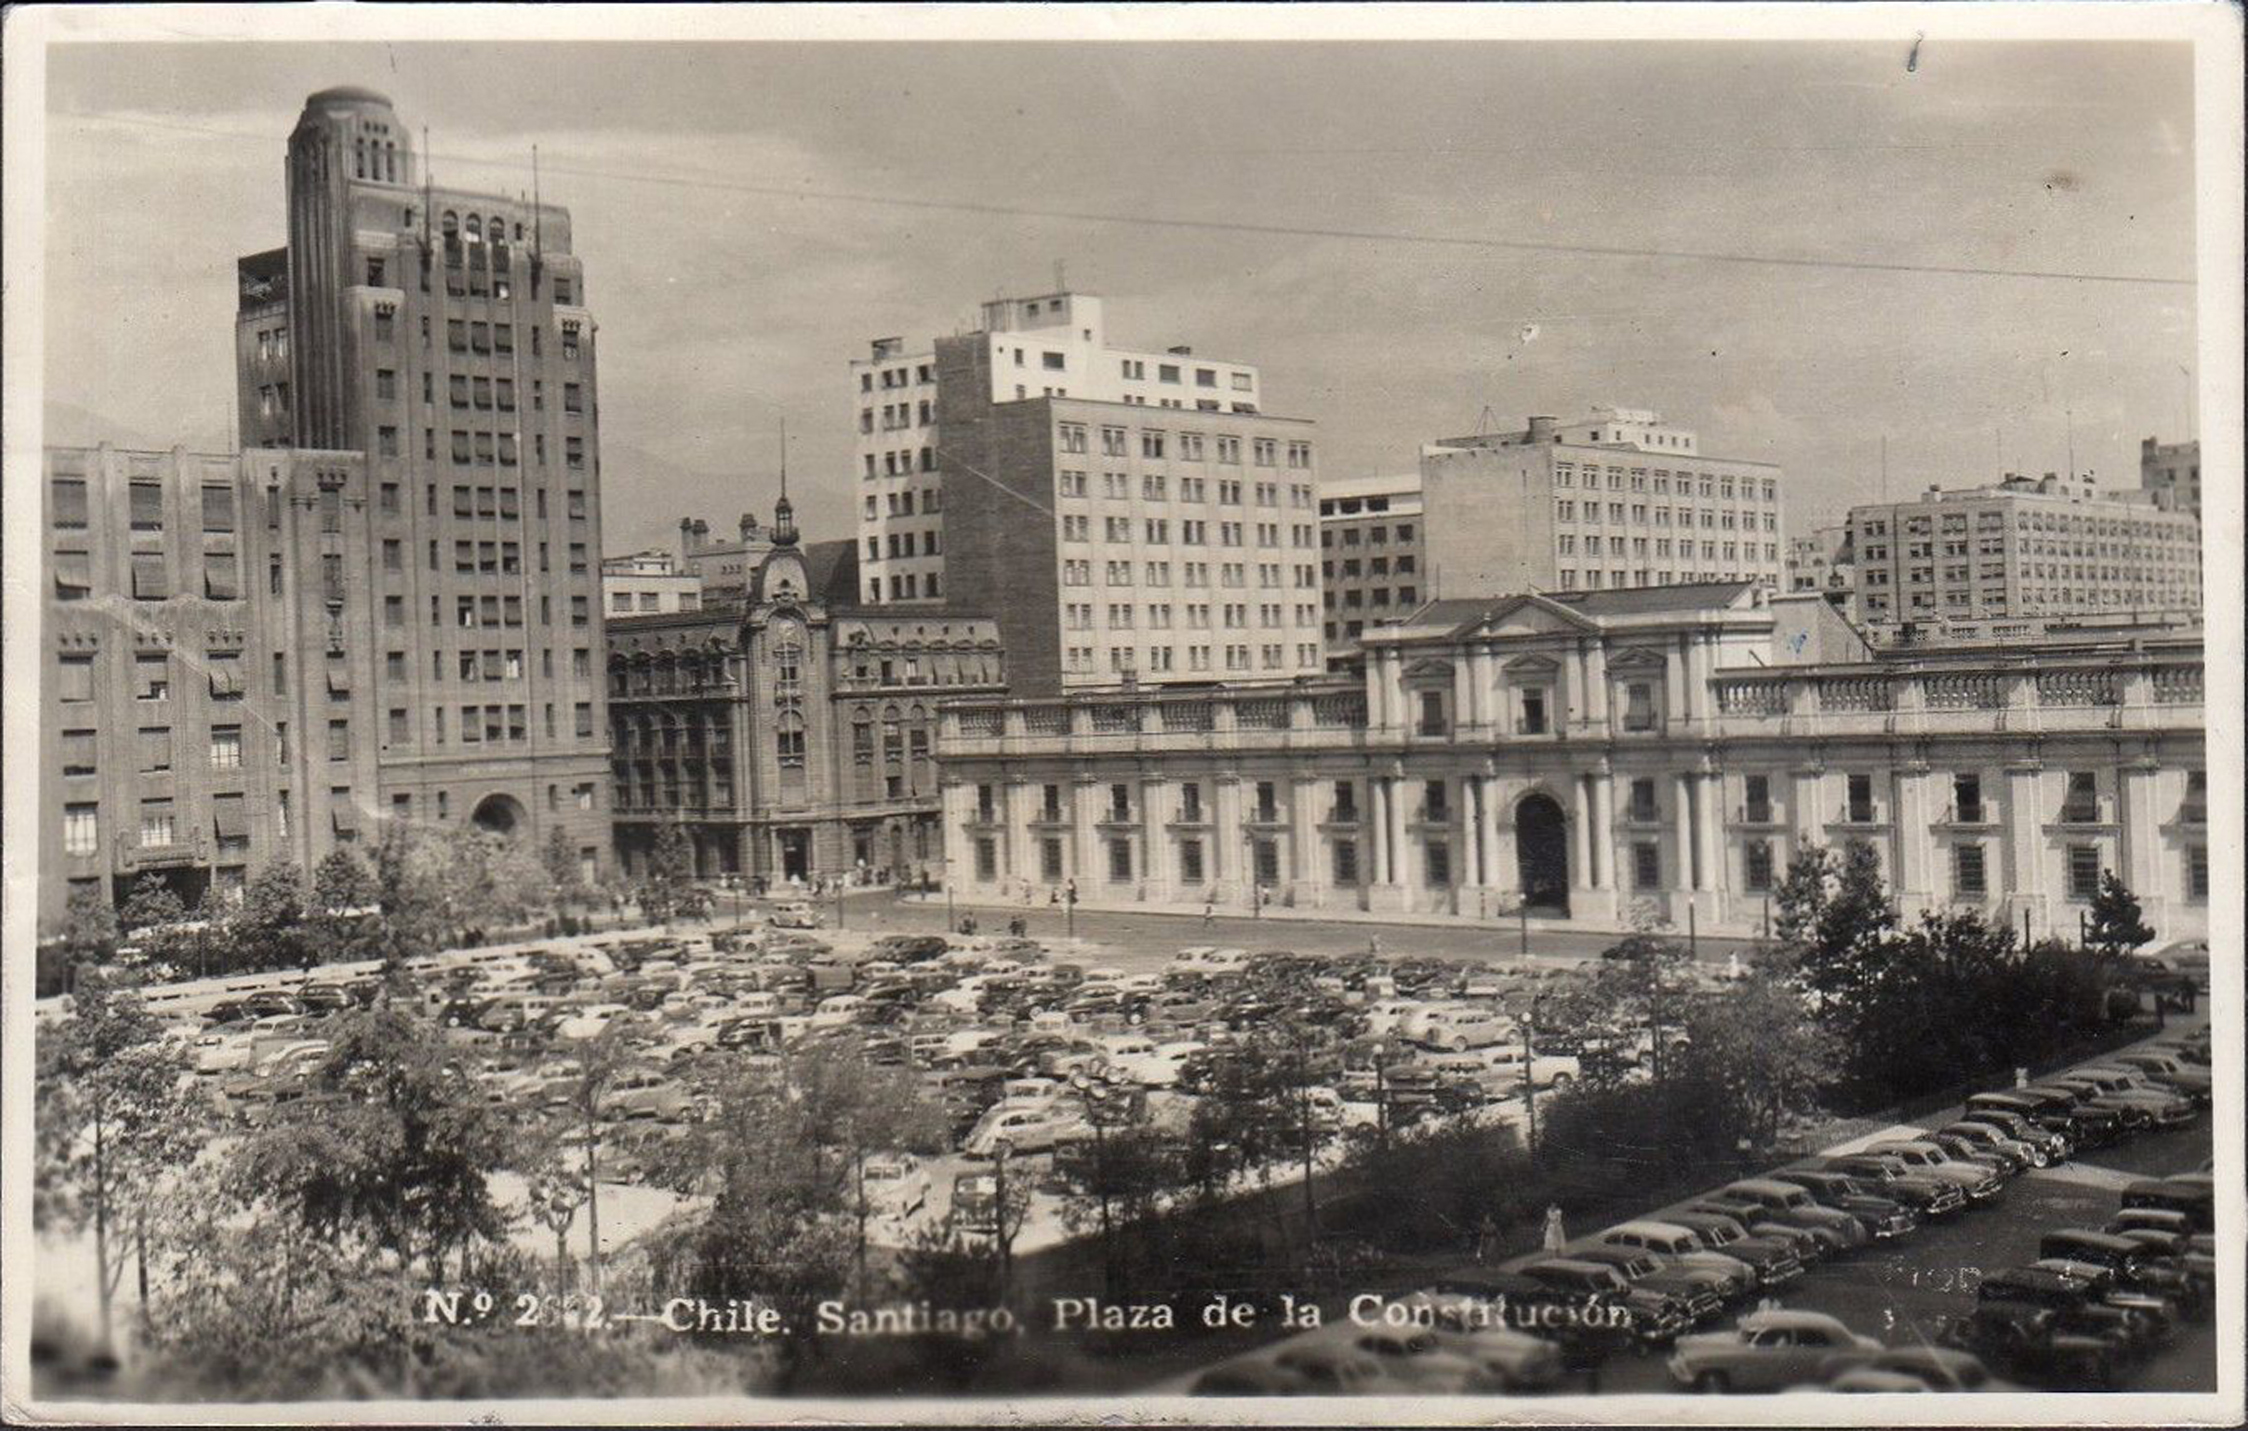 Enterreno - Fotos históricas de chile - fotos antiguas de Chile - Plaza de la Constitución en Santiago, 1954